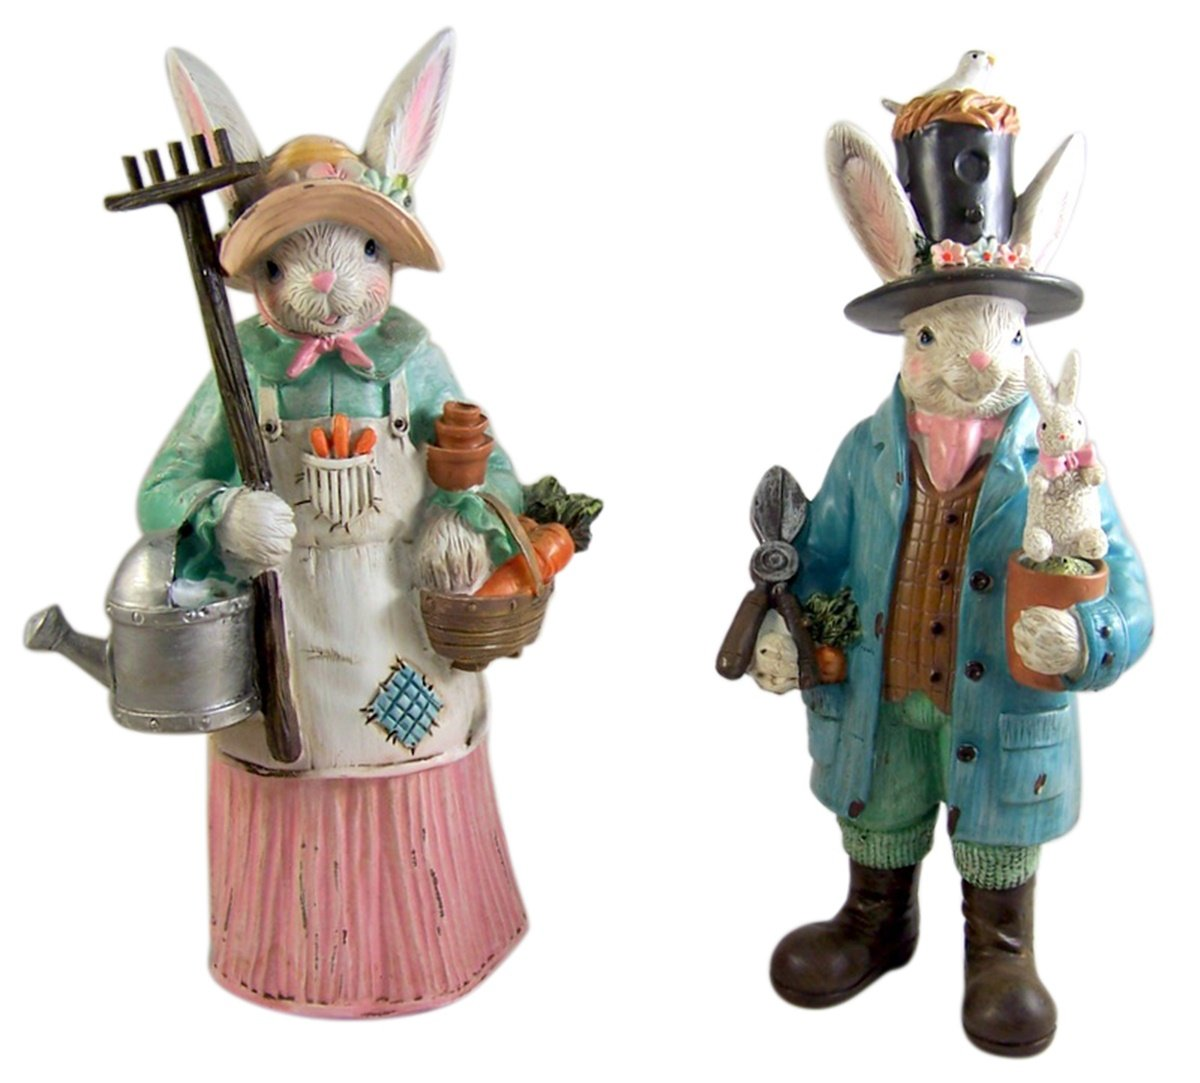 Amazon Farmhouse Rabbit Home Decor Gardening Bunny Couple Statue Figurine Decoration Set 12 Inch Kitchen